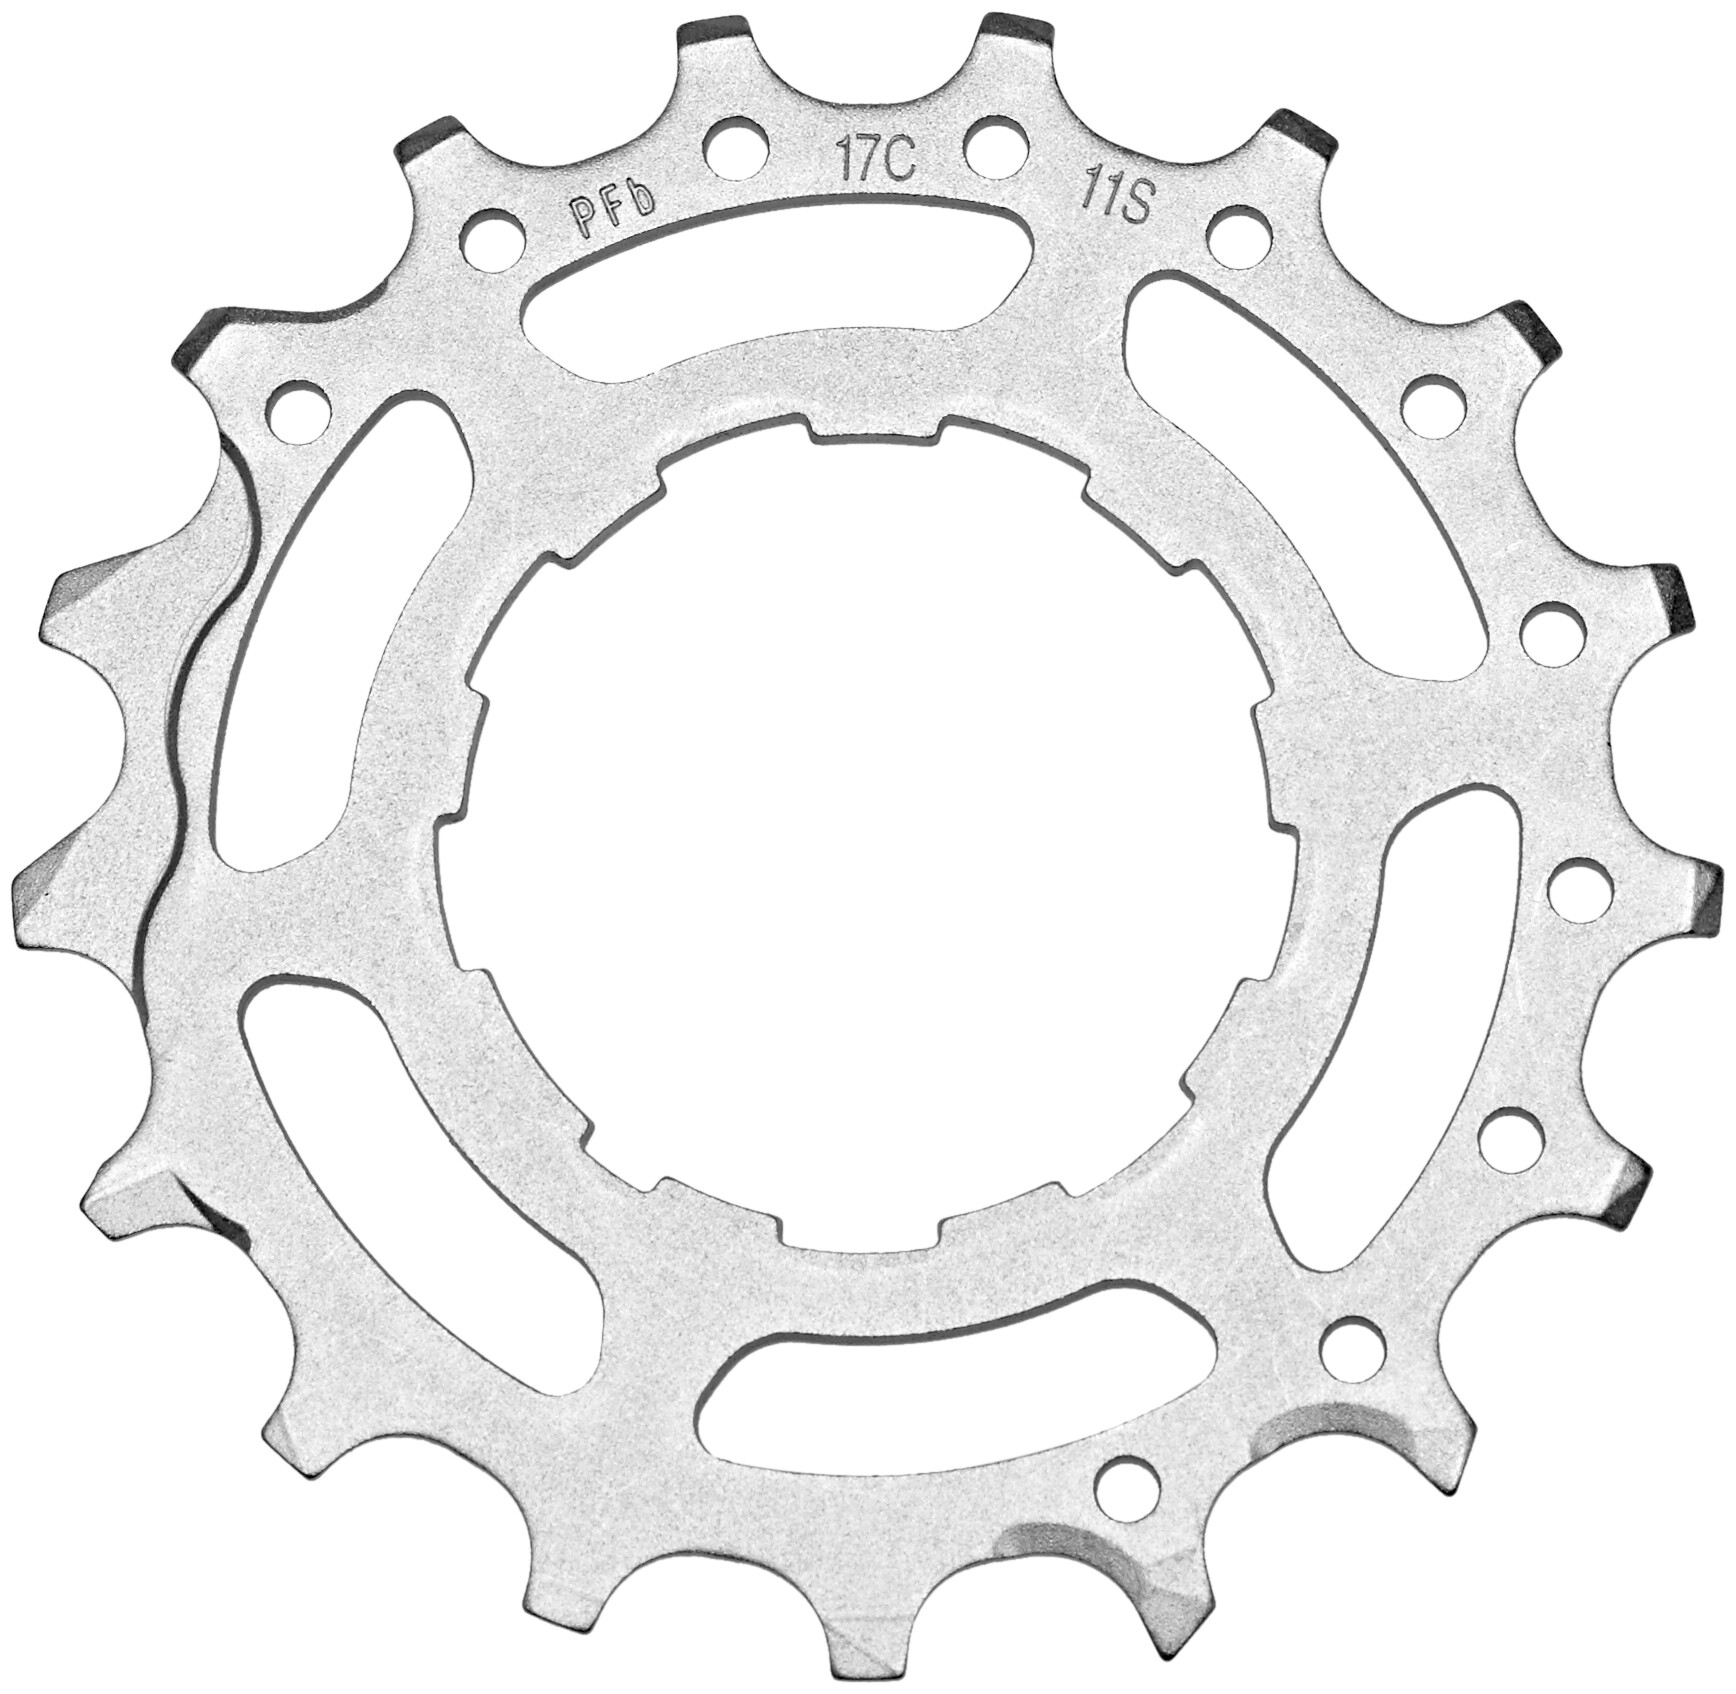 Shimano CS-9000 Sprocket for 11-25/11-28 teeth (2019) | chainrings_component